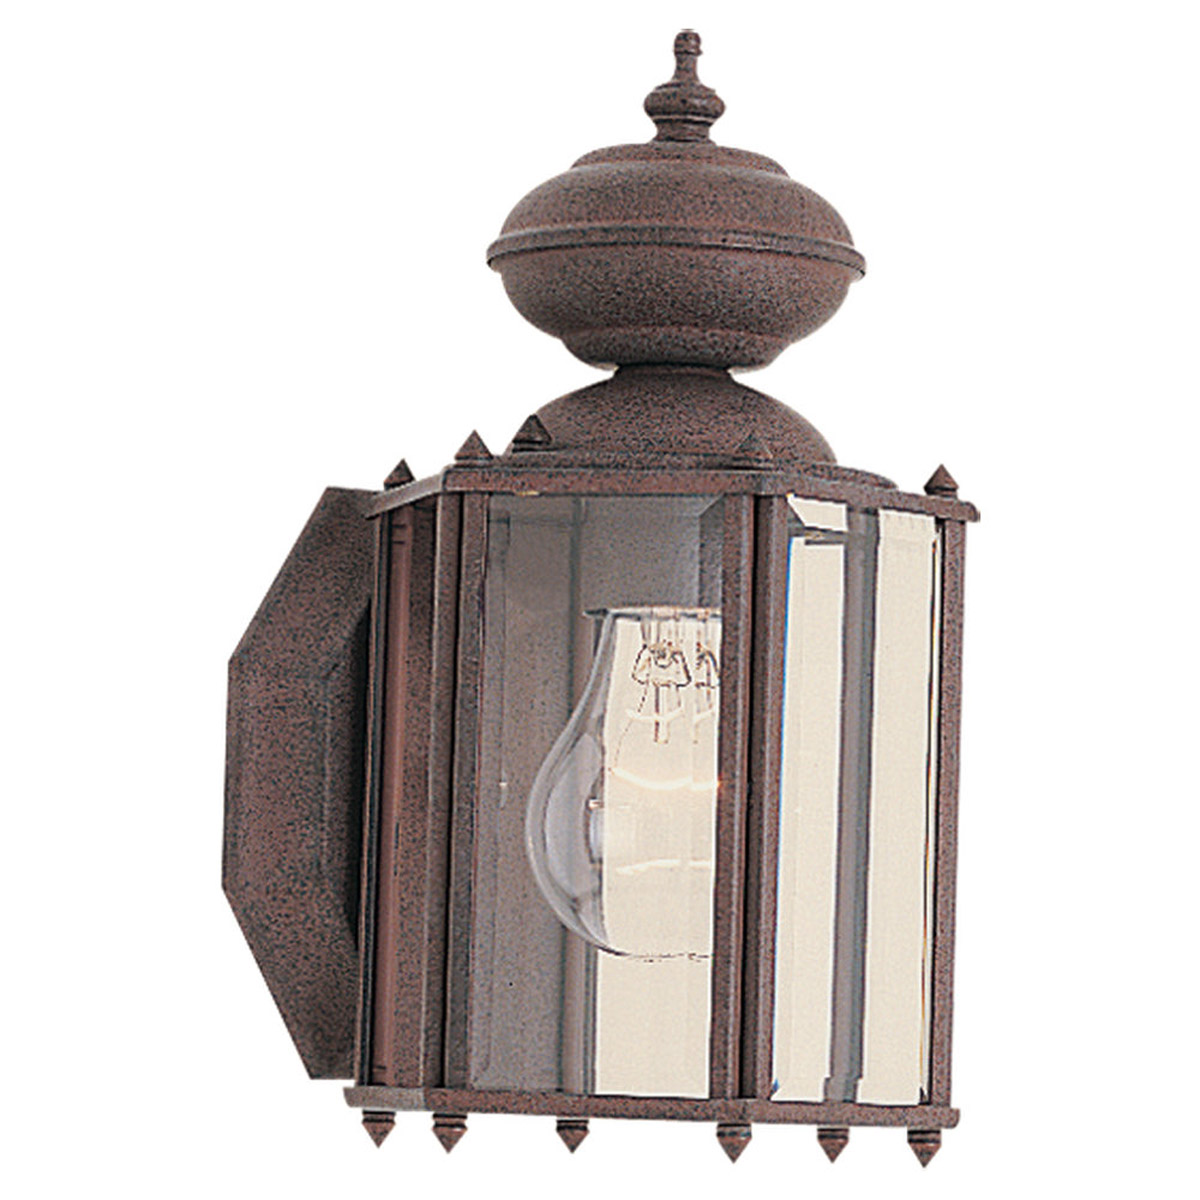 Sea Gull Lighting Classico 1 Light Outdoor Wall Lantern in Sienna 8507-26 photo